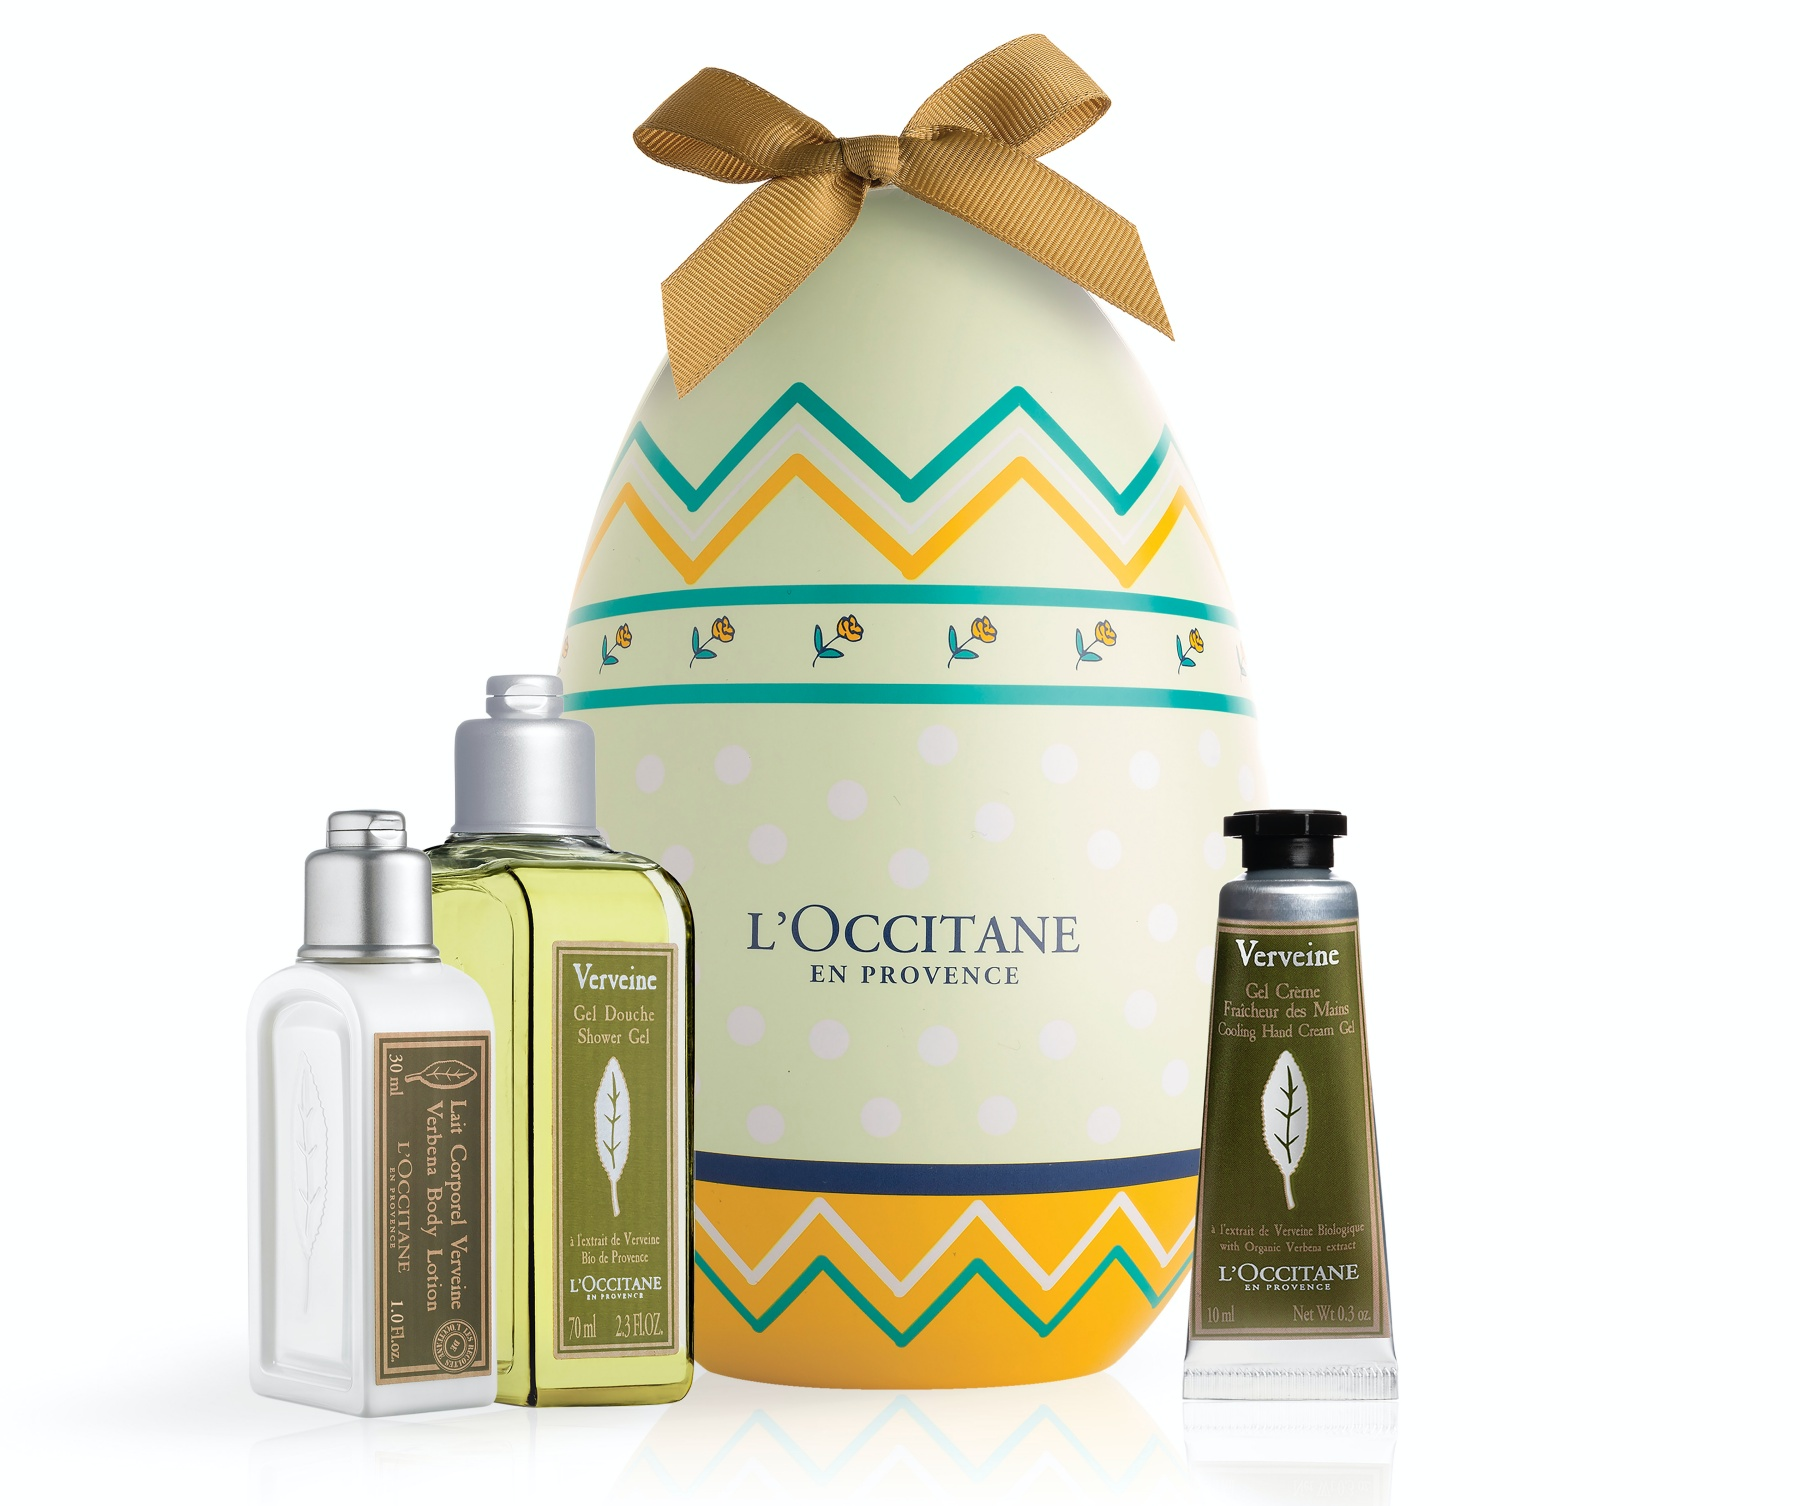 L'OCCITANE Verbena Easter Egg with products